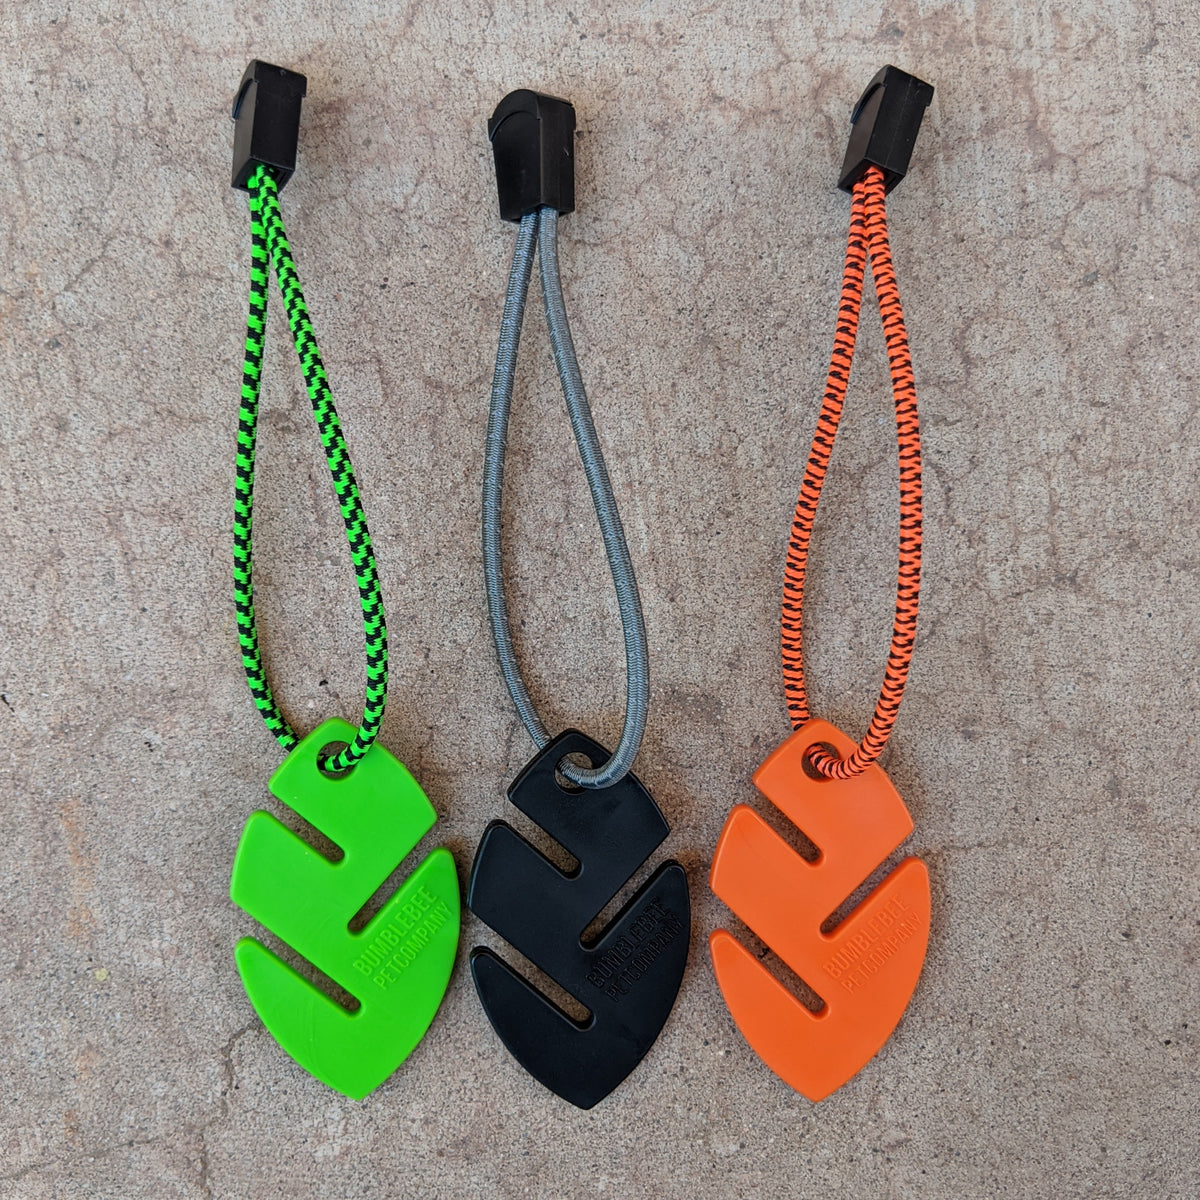 Set of 3 Tagalongs - Hands Free Poop Bag Carry Clip